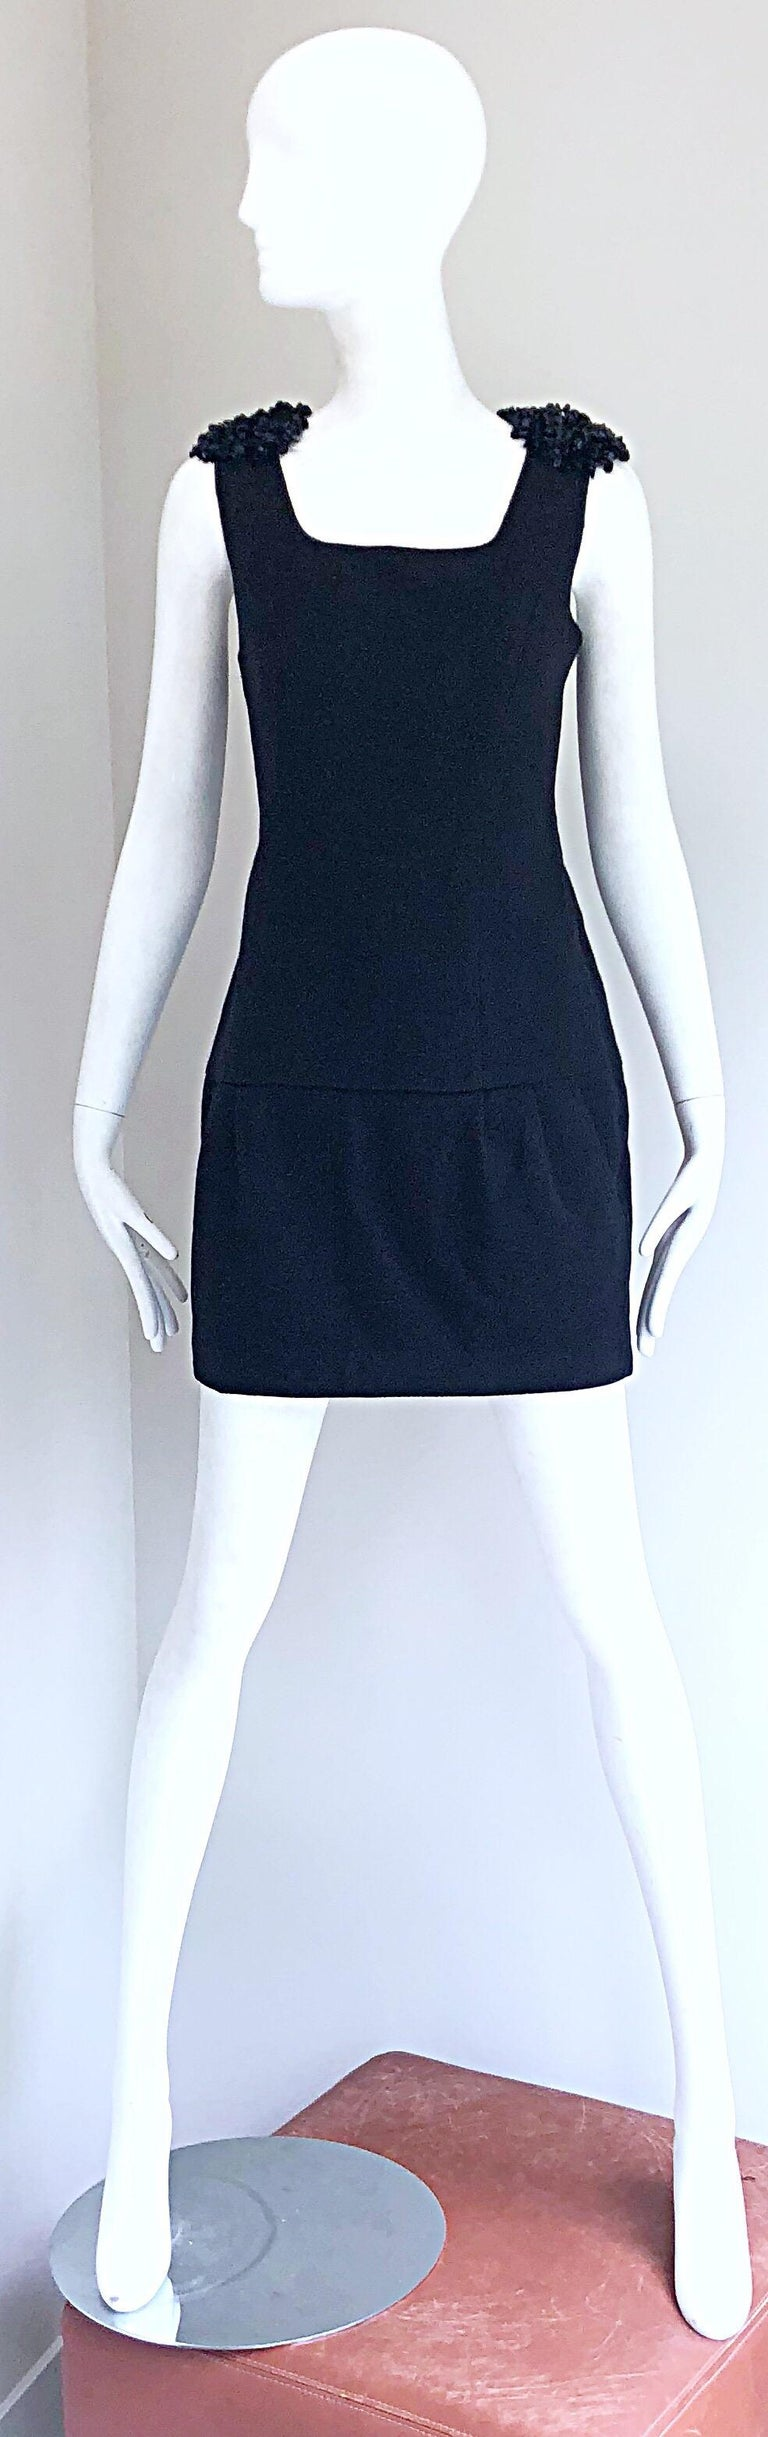 1990s Miu Miu Black Virgin Wool Sequin Beaded Vintage 90s Mini Dress In Excellent Condition For Sale In Chicago, IL